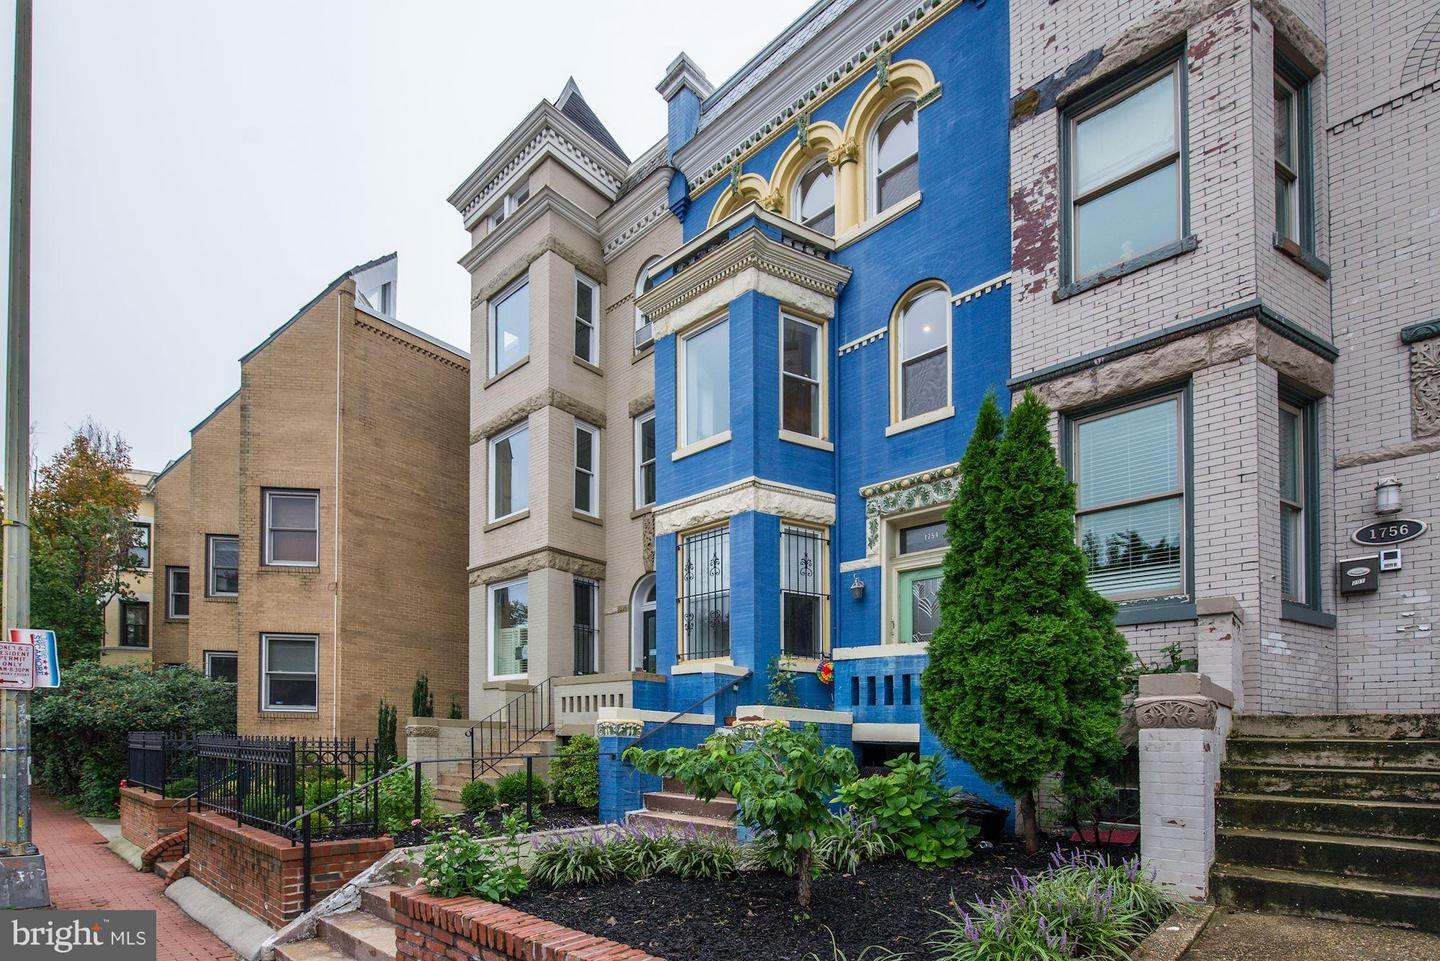 Single Family Home for Sale at 1754 U St Nw #3 1754 U St Nw #3 Washington, District Of Columbia 20009 United States